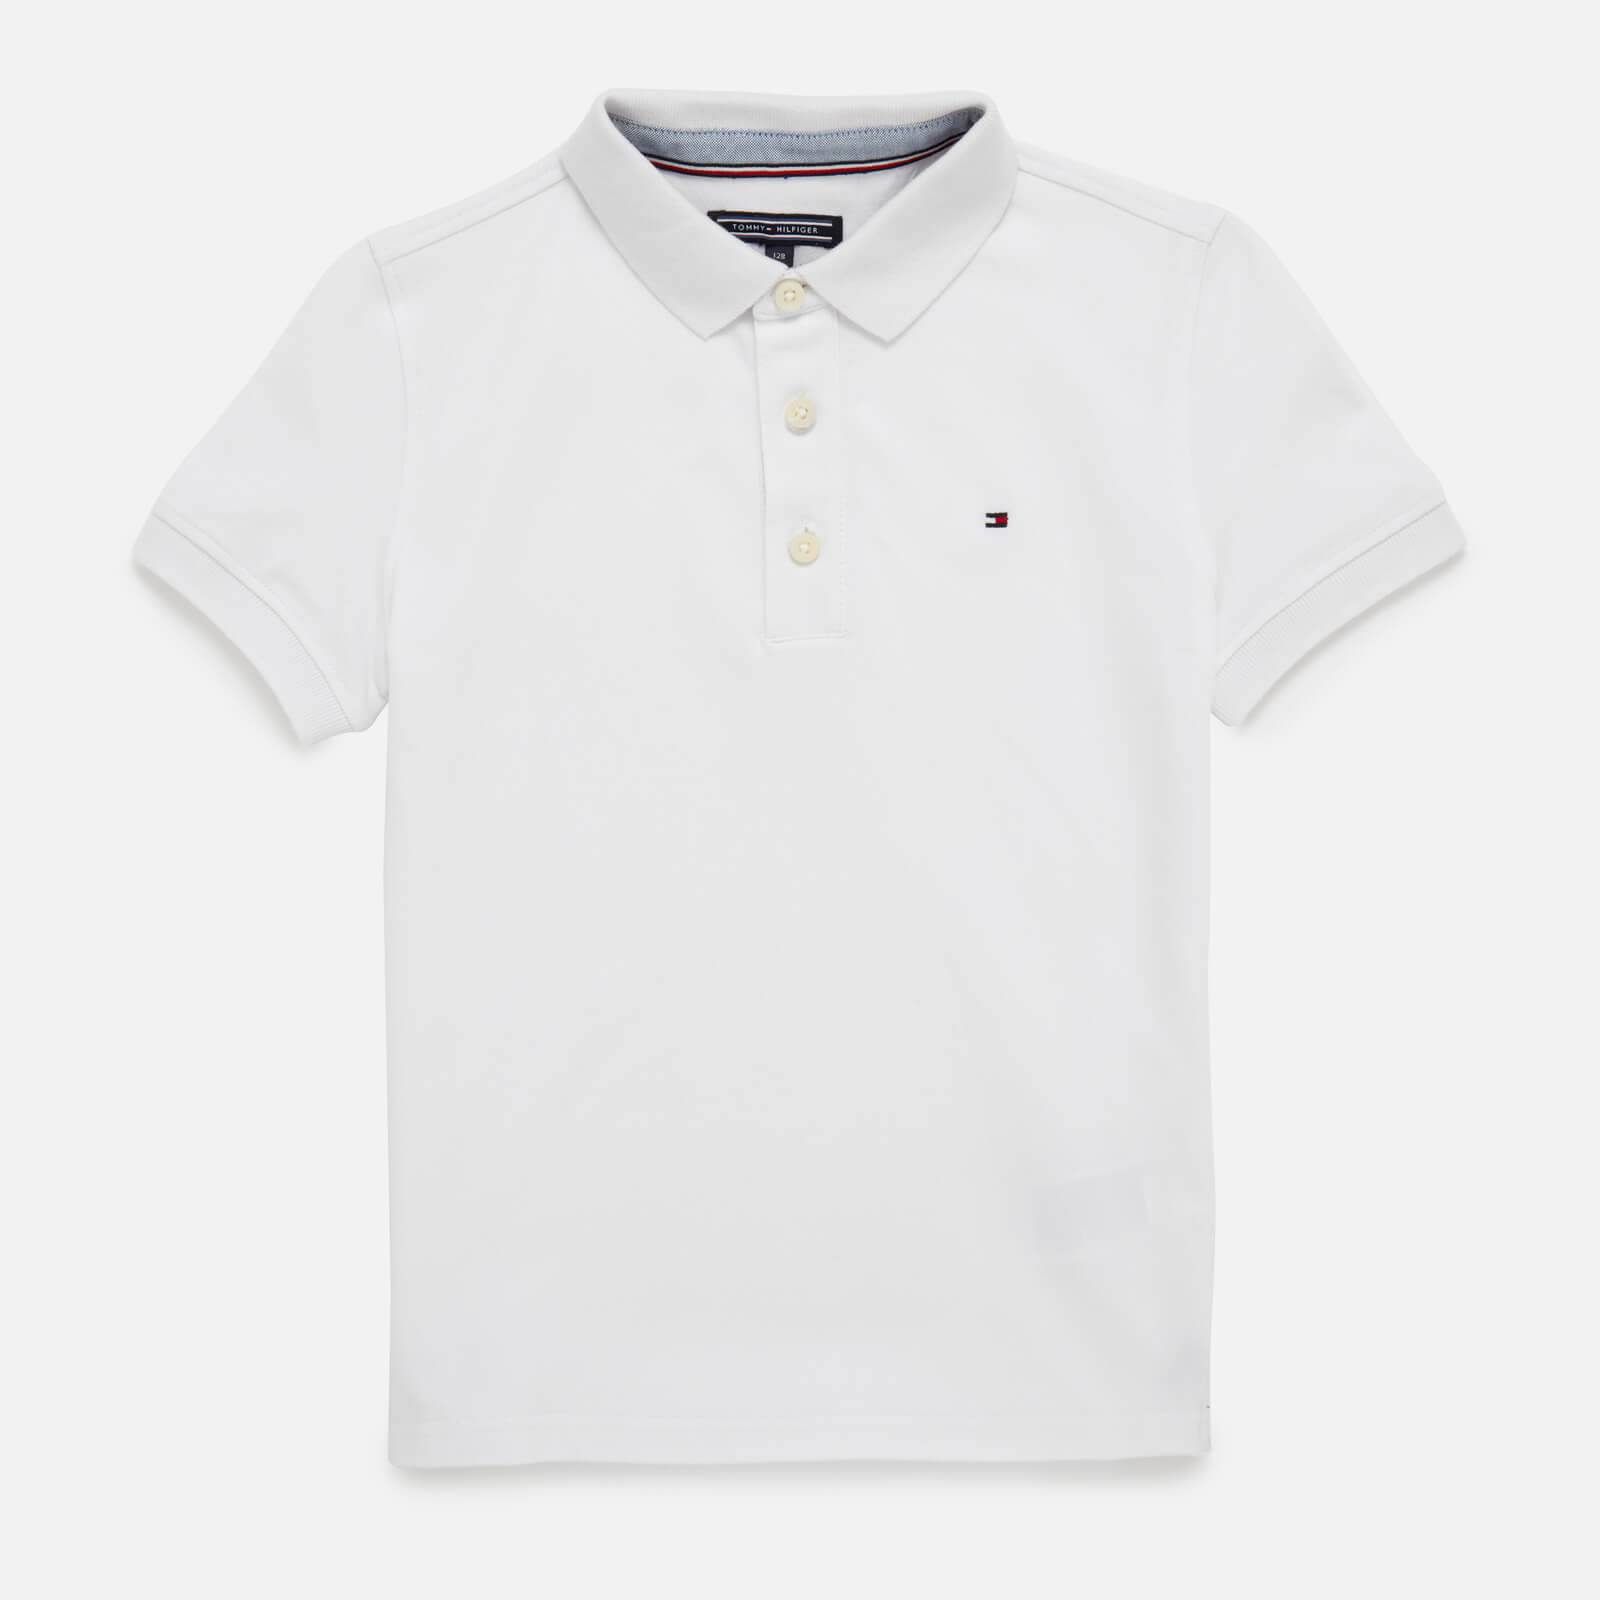 Tommy Kids Boys' Iconic Polo Shirt - Bright White - 10 Years